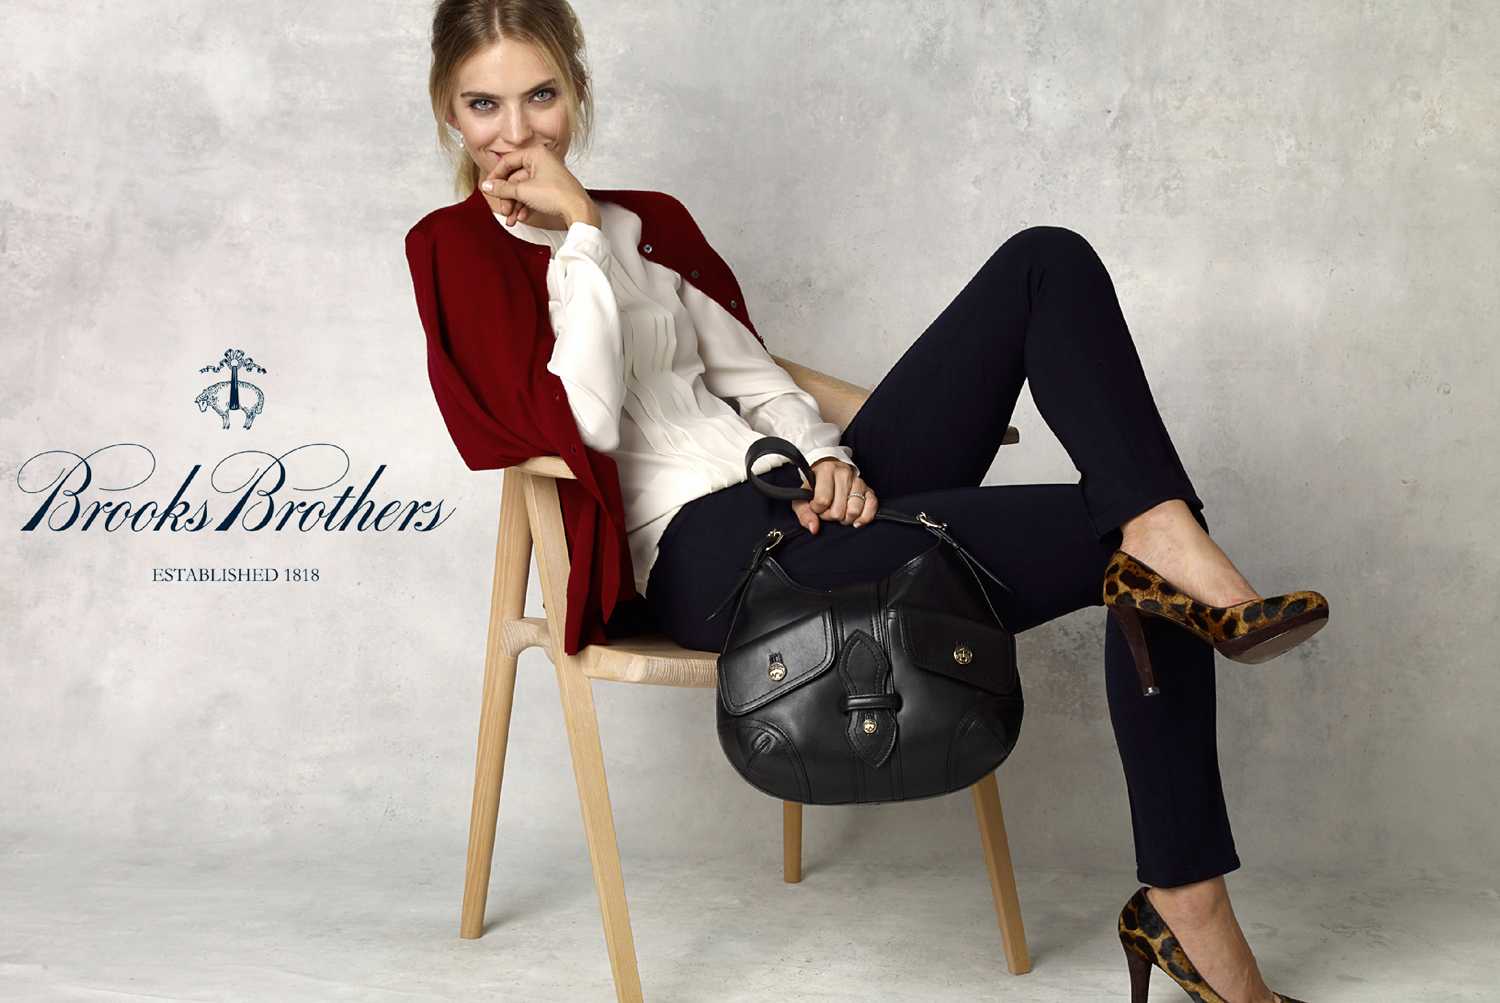 Brooks Brothers - Office